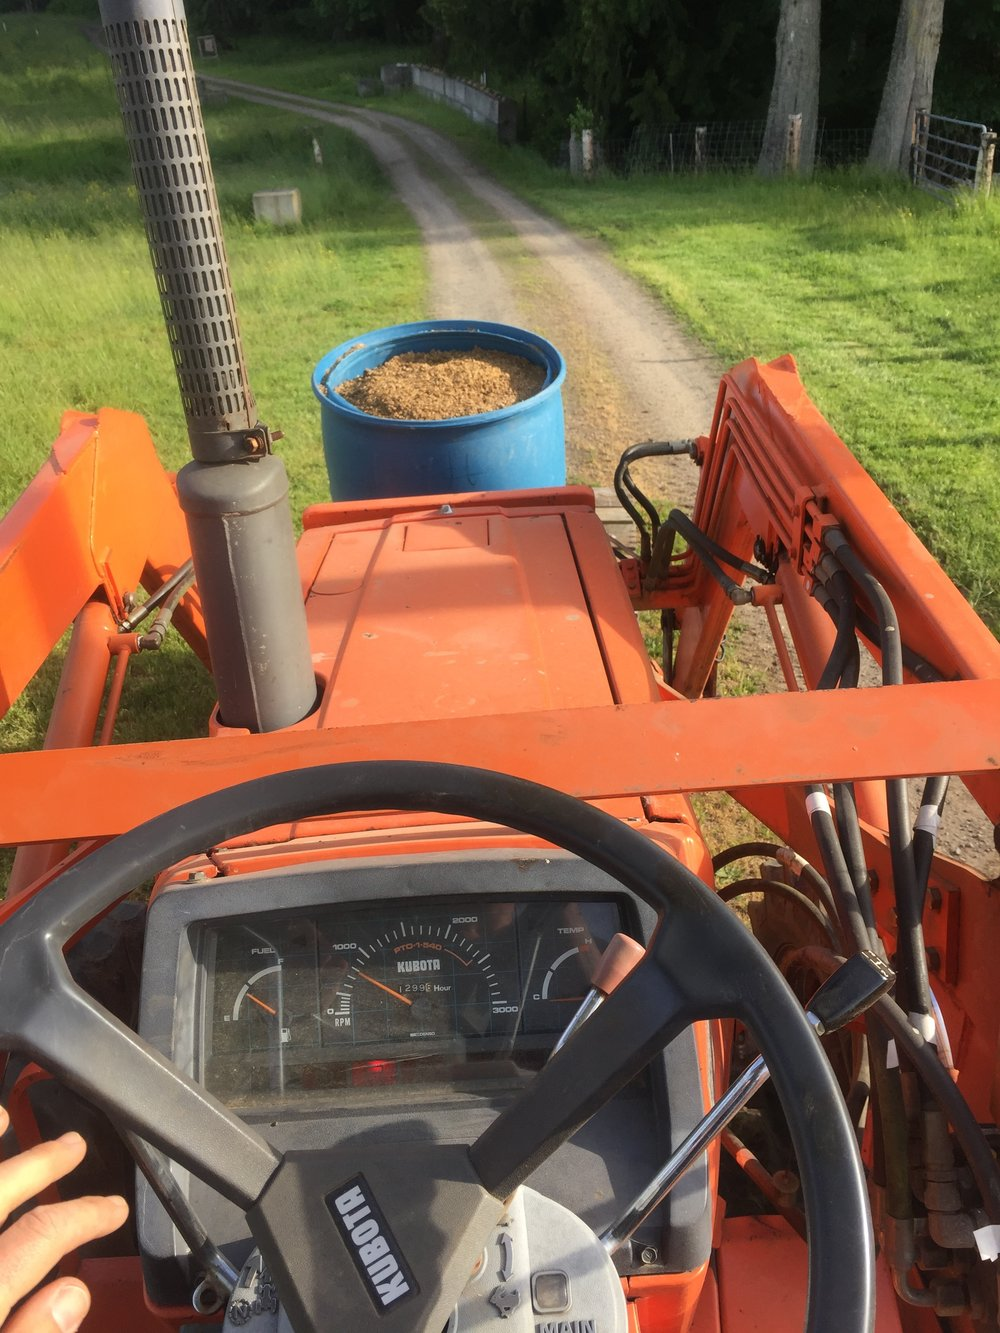 The view from our tractor